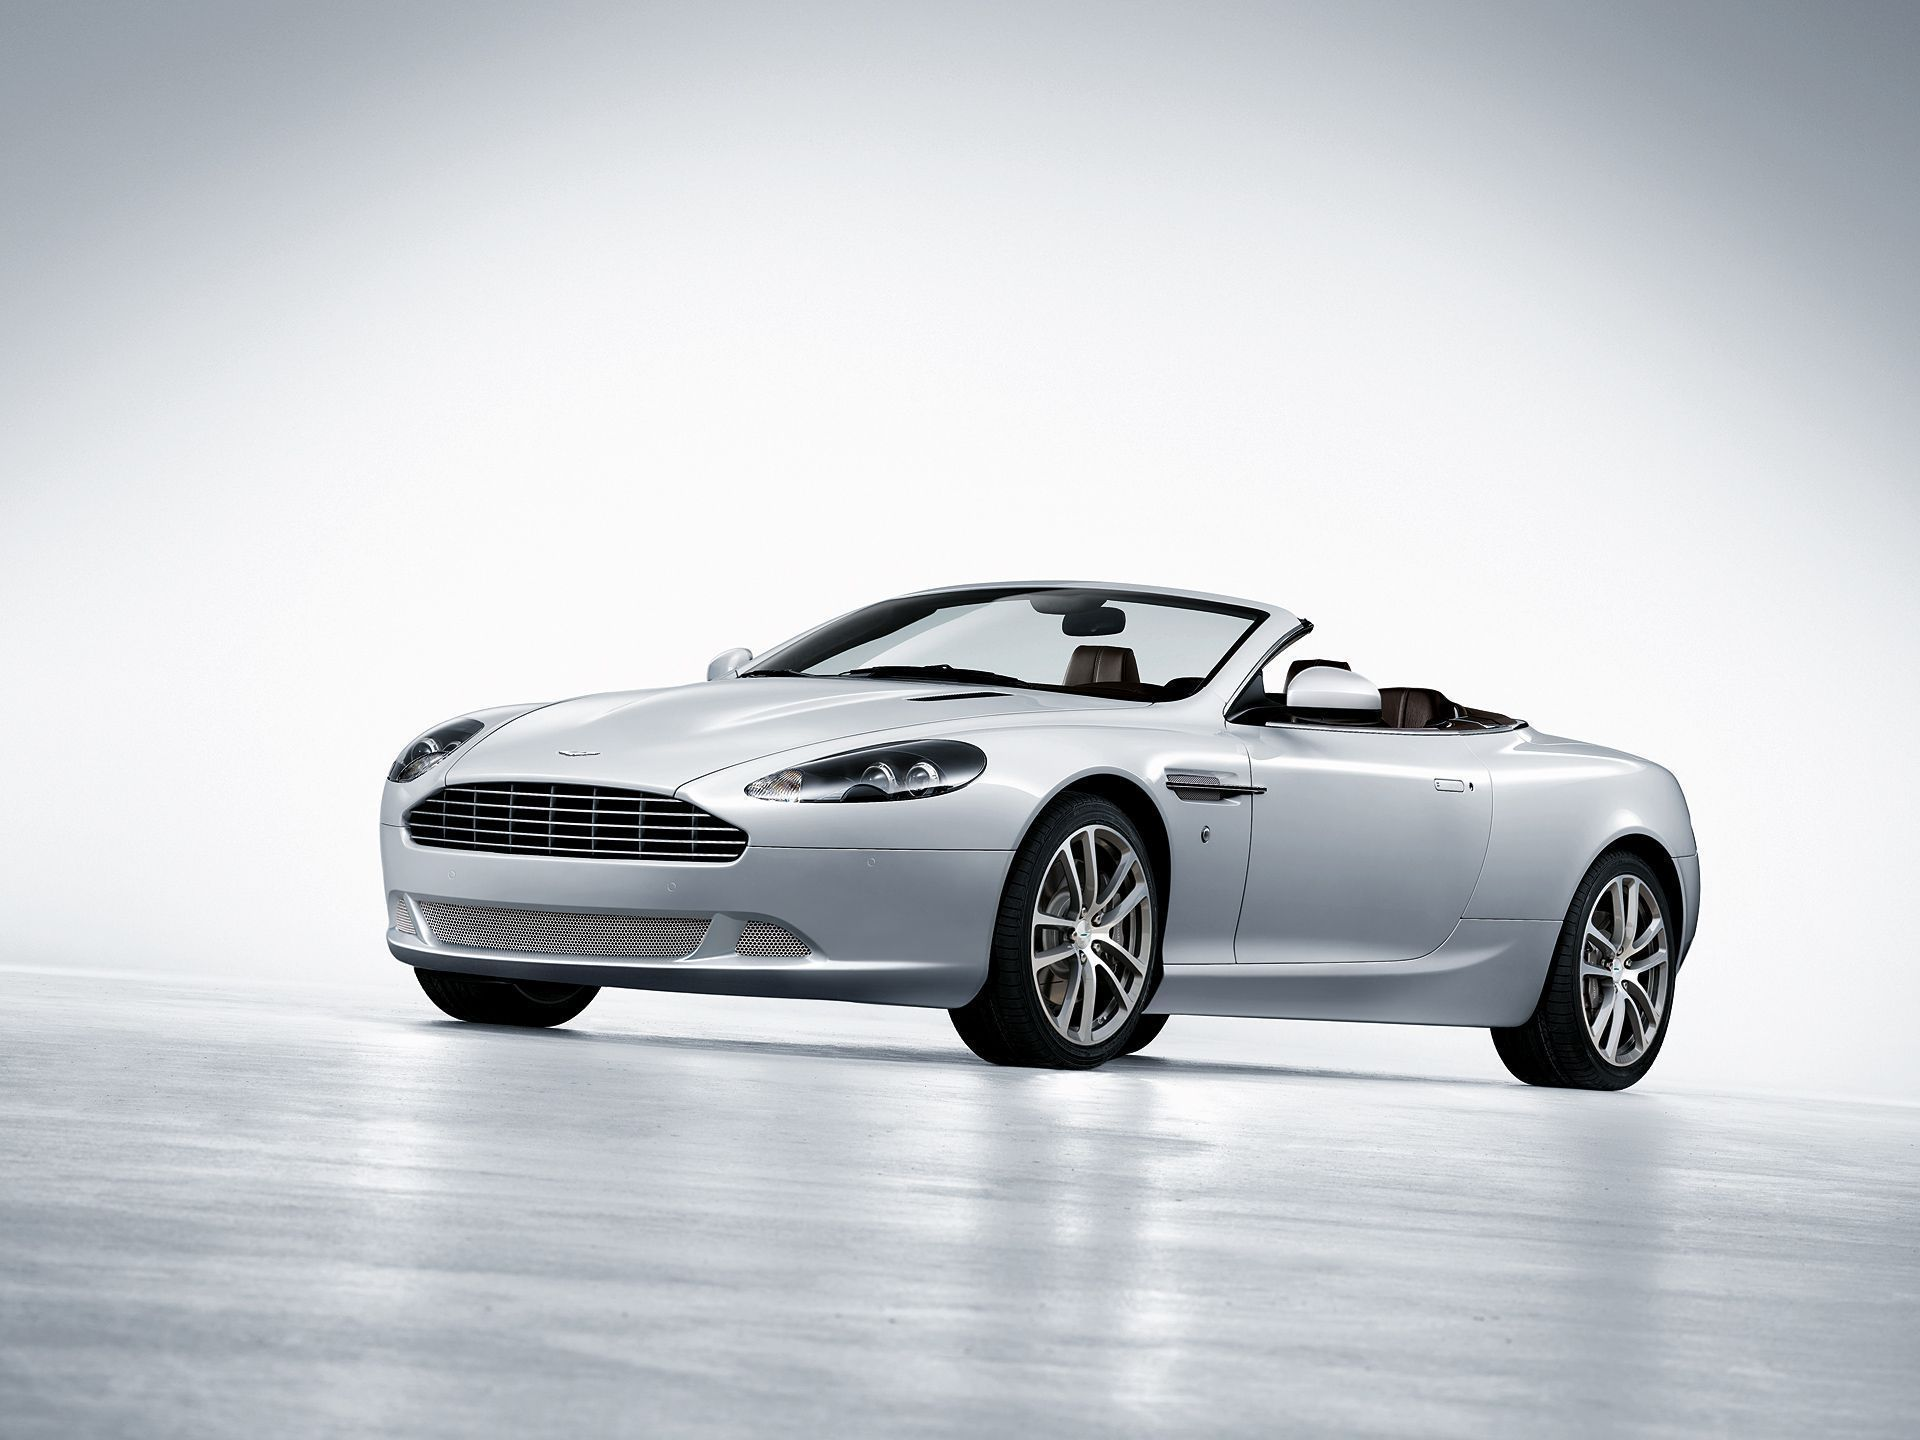 Aston Martin Db9 Full HD